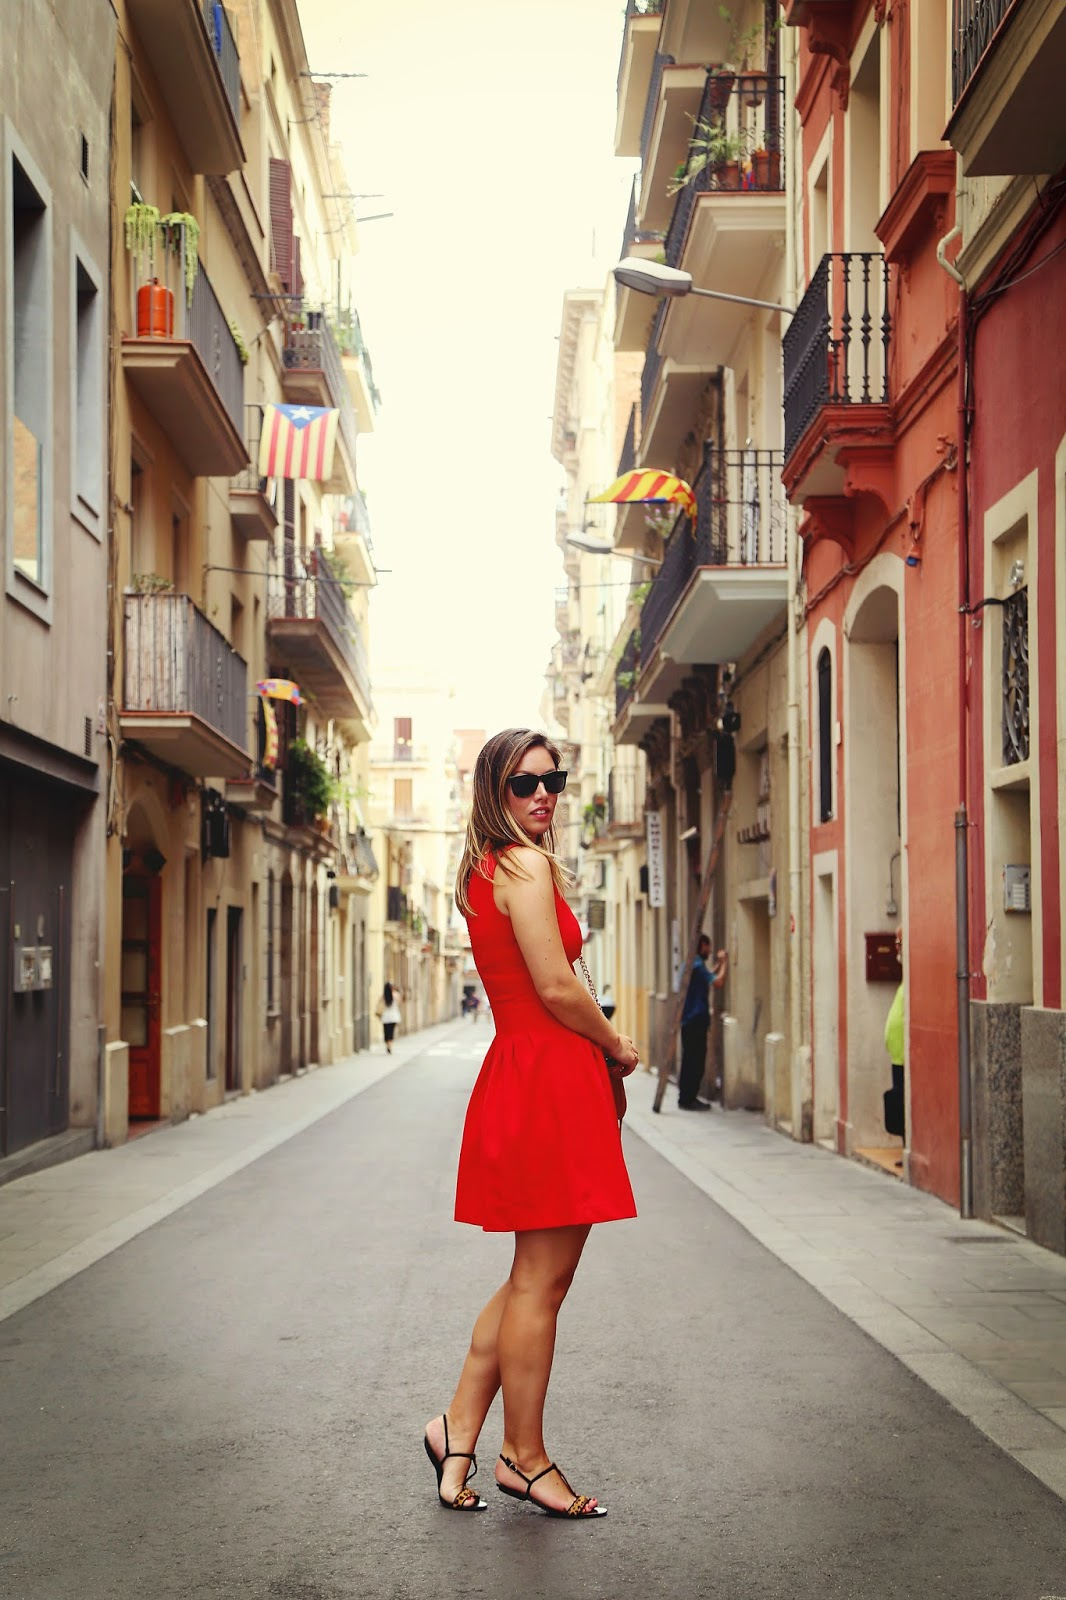 to vogue or bust, vancouver style blog, vancouver fashion blog, vancouver travel blog, canadian fashion blog, canadian style blog, canadian travel blog, sightseeing in barcelona, what to see in barcelona, barcelona tourism, barcelona sights, gracia barcelona, where to eat in barcelona, best tapas in barcelona, best bars in barcelona, tapa bar barcelona, what to see in gracia barcelona, travelling to barcelona, barcelona in 3 days, red dress spain, barcelona street style, zara leopard sandals, rebecca minkoff mini mac bag, spanish street style, what to wear in barcelona, best fashion blog, best style blog, top fashion blog, top style blog